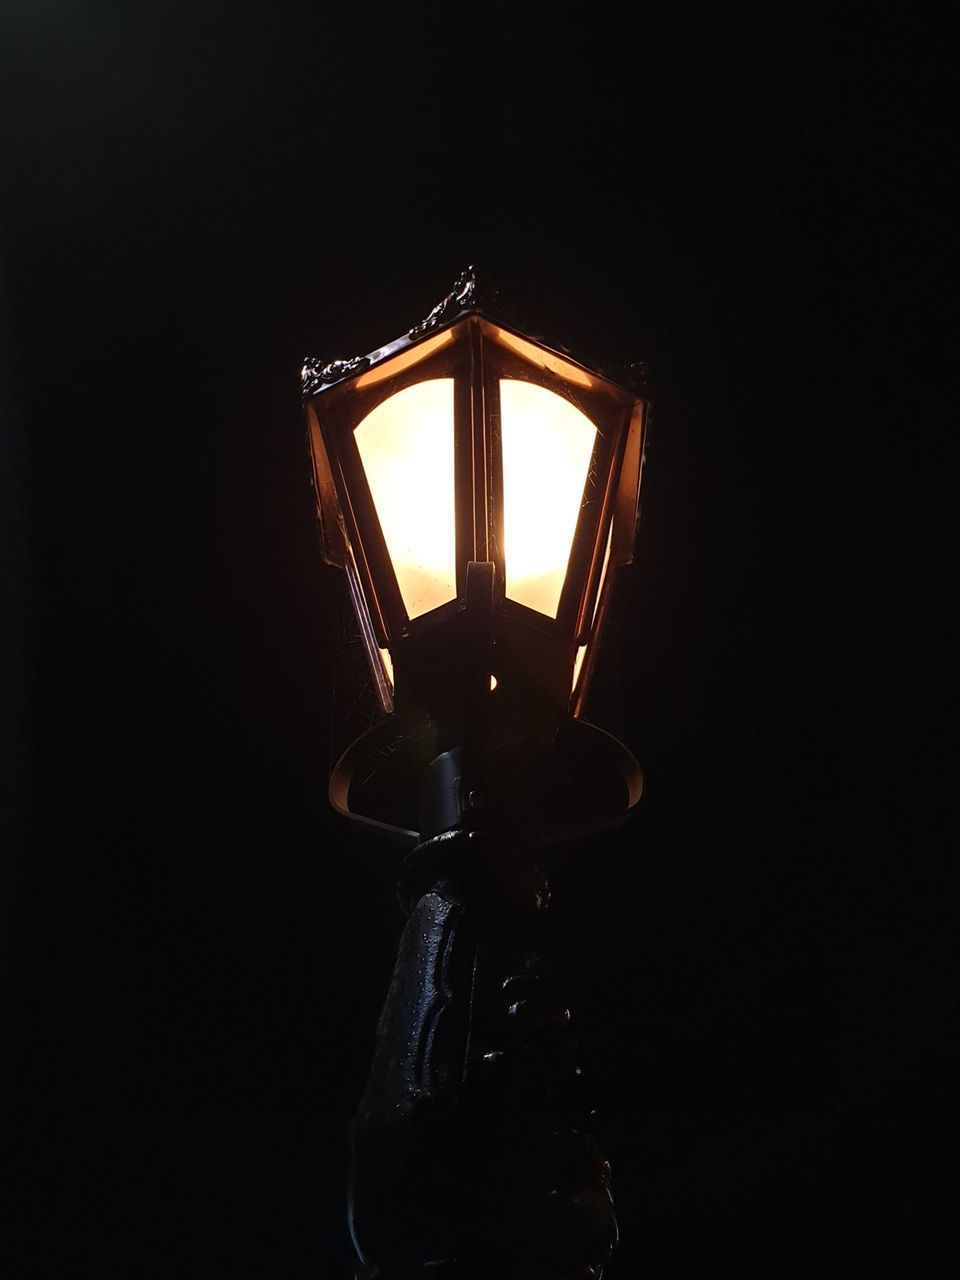 LOW ANGLE VIEW OF ILLUMINATED LAMP IN DARK ROOM